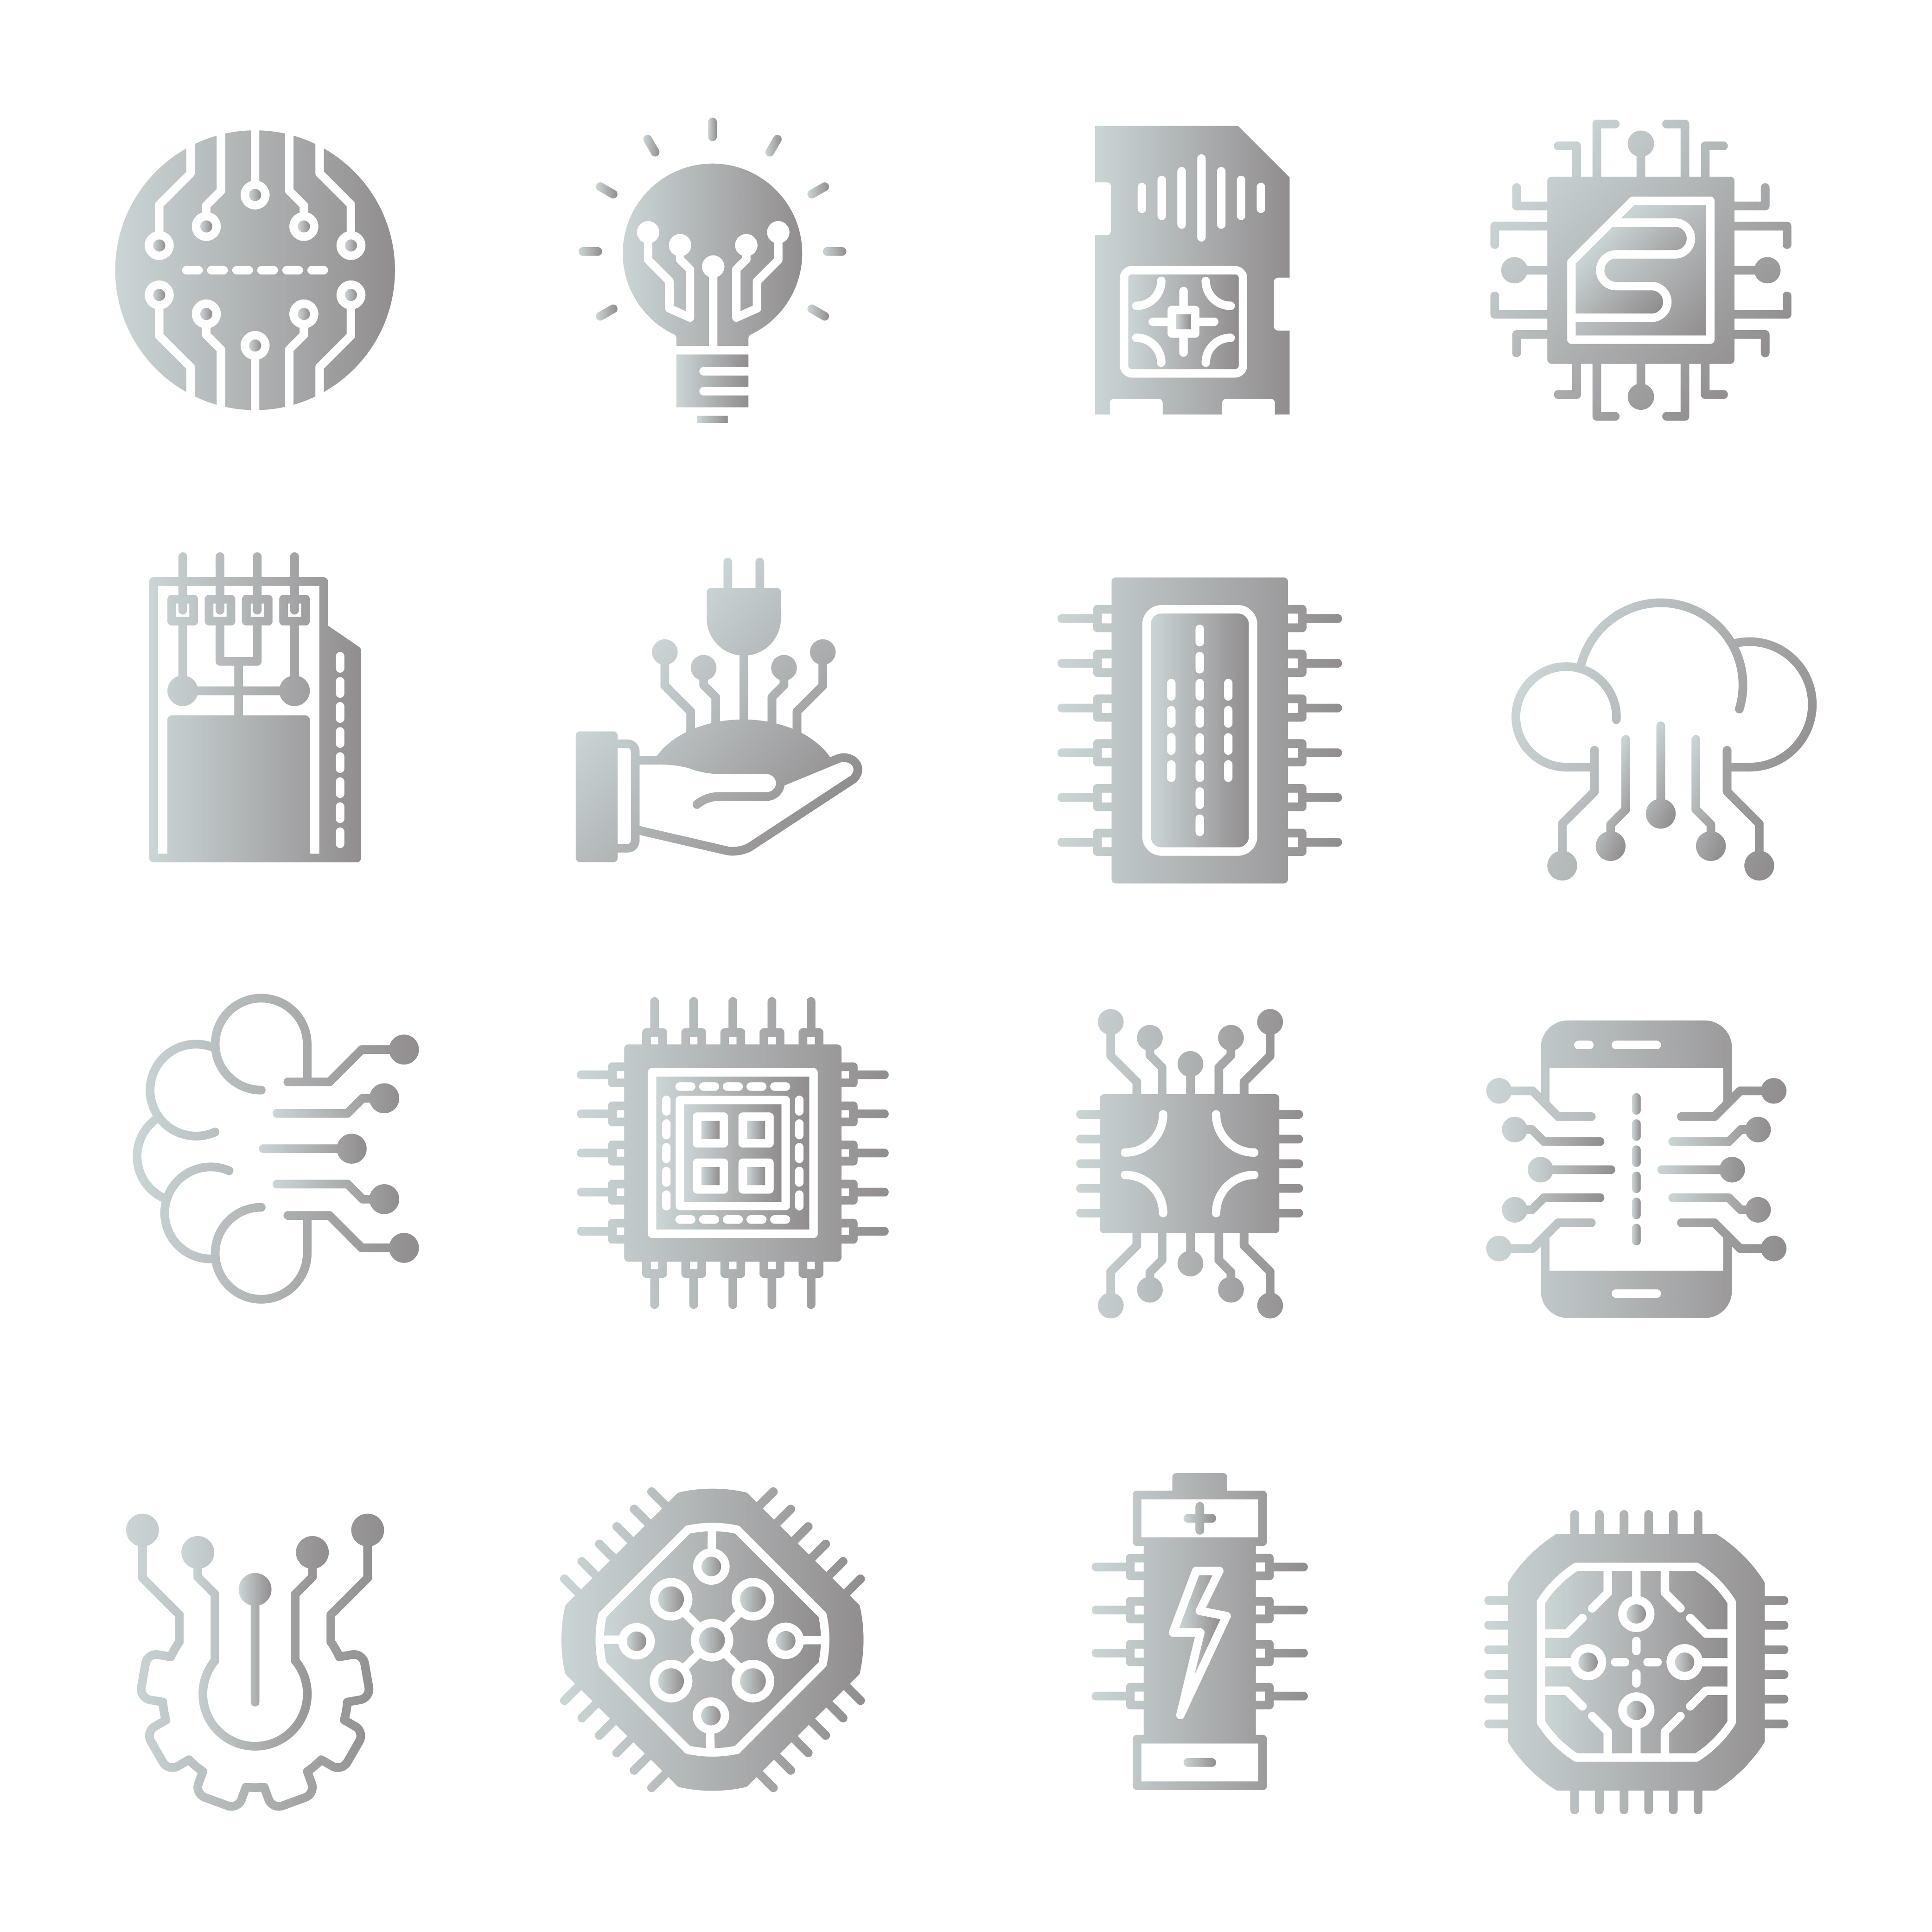 Electronic Components Free Vector Art